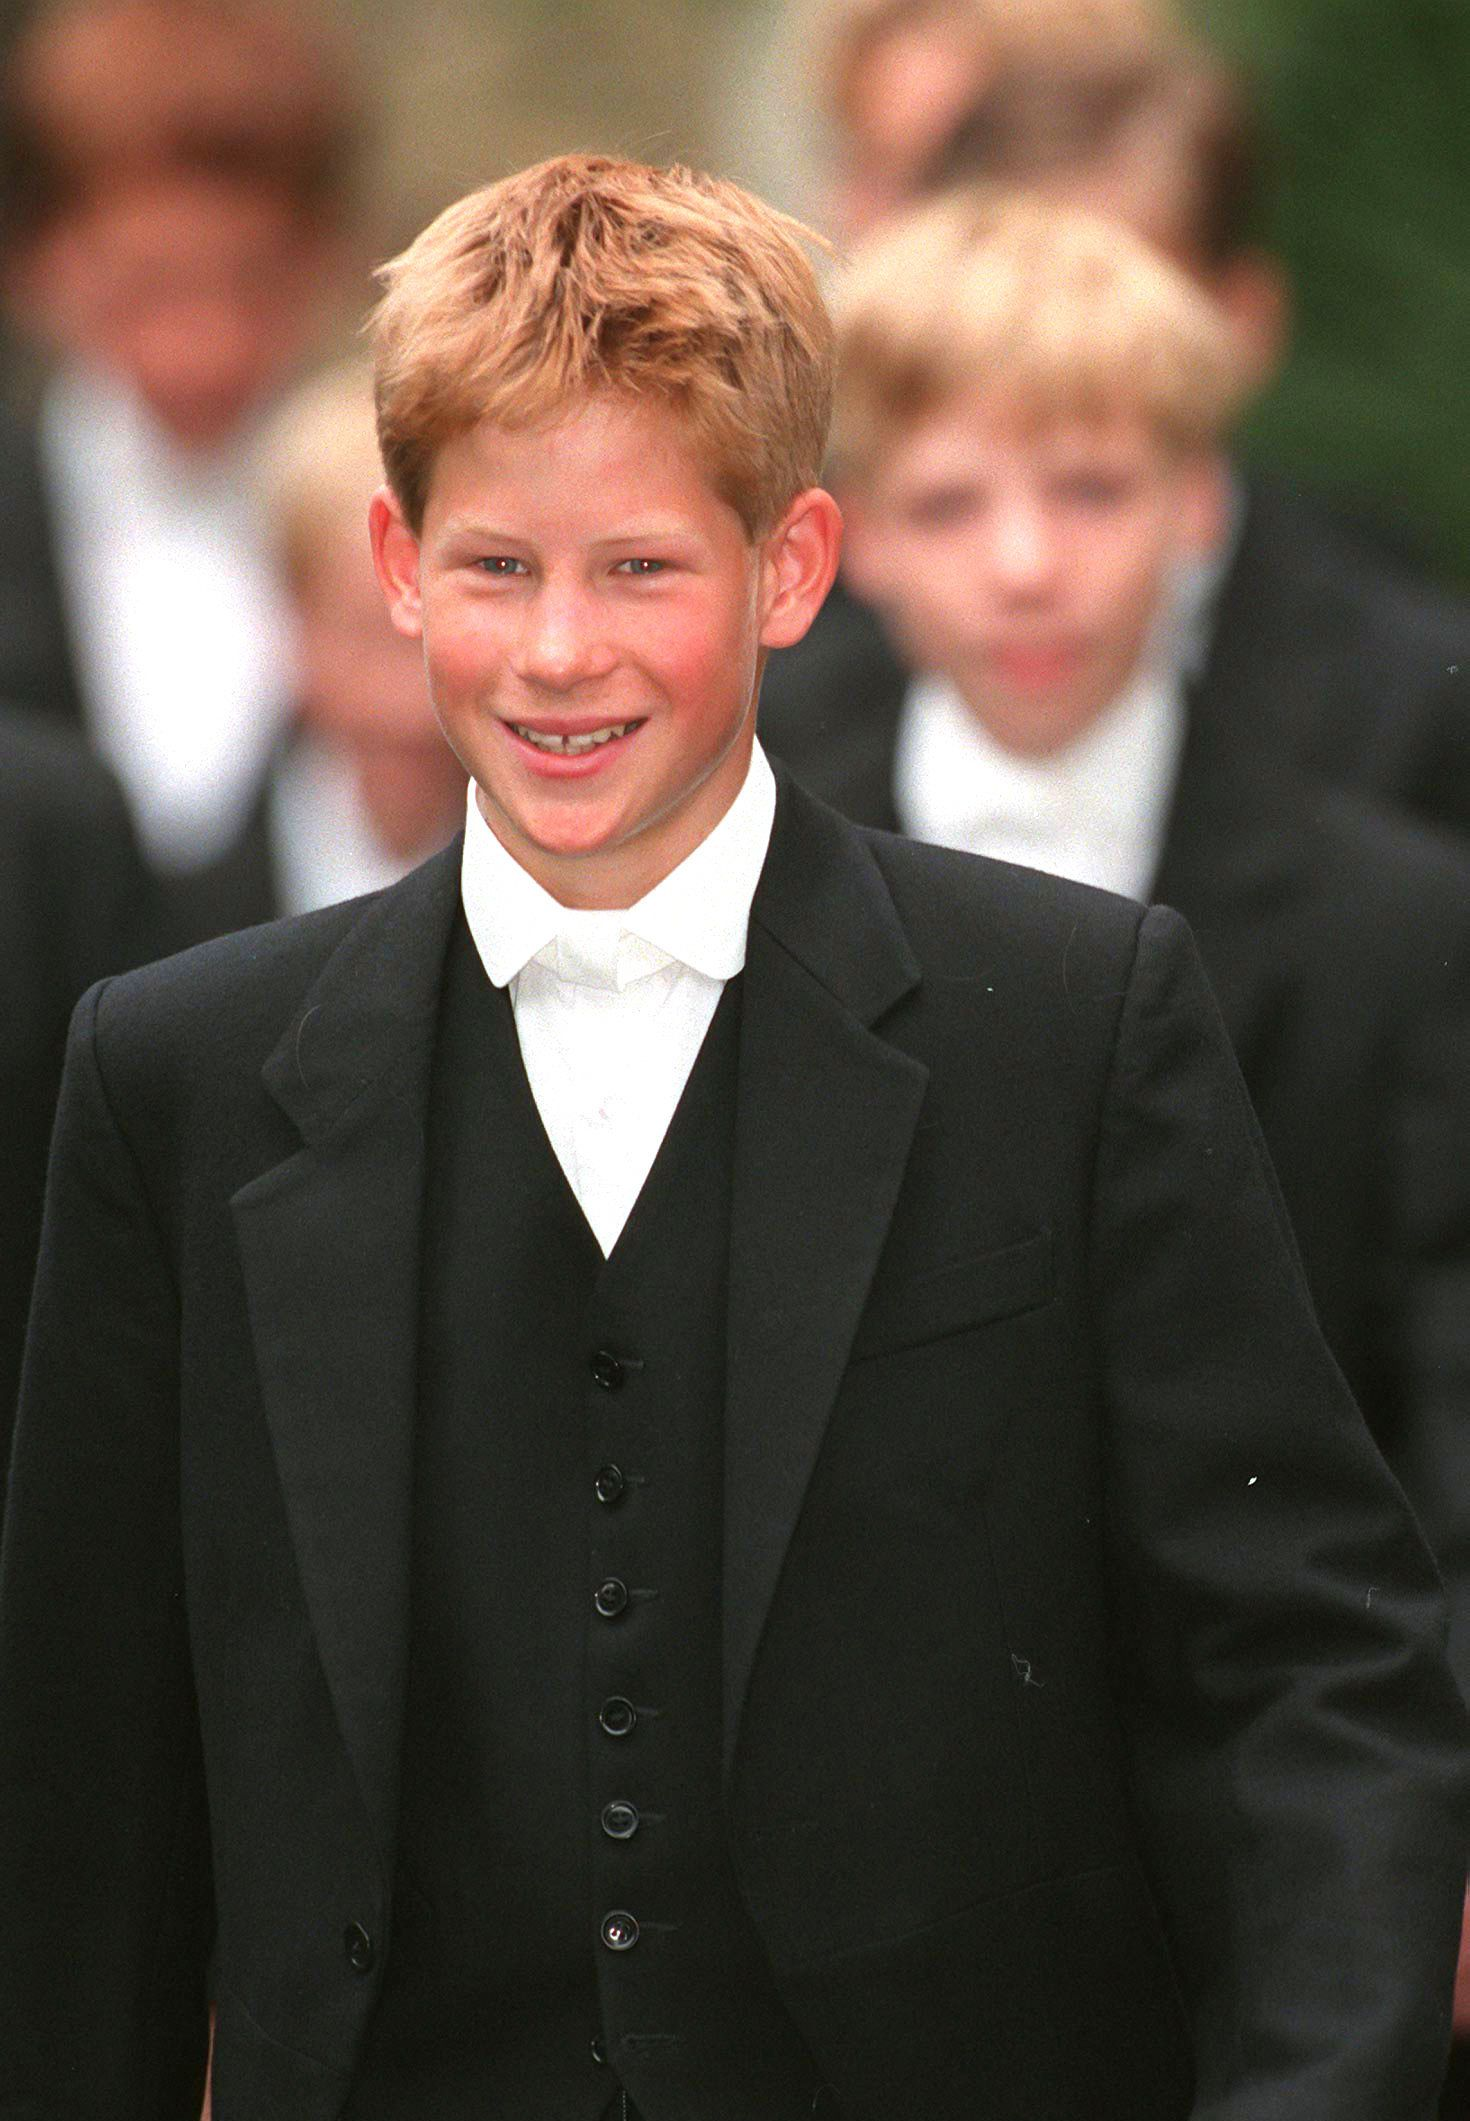 Prince Harry on his first day at Eton College, on Sept. 3, 1998.